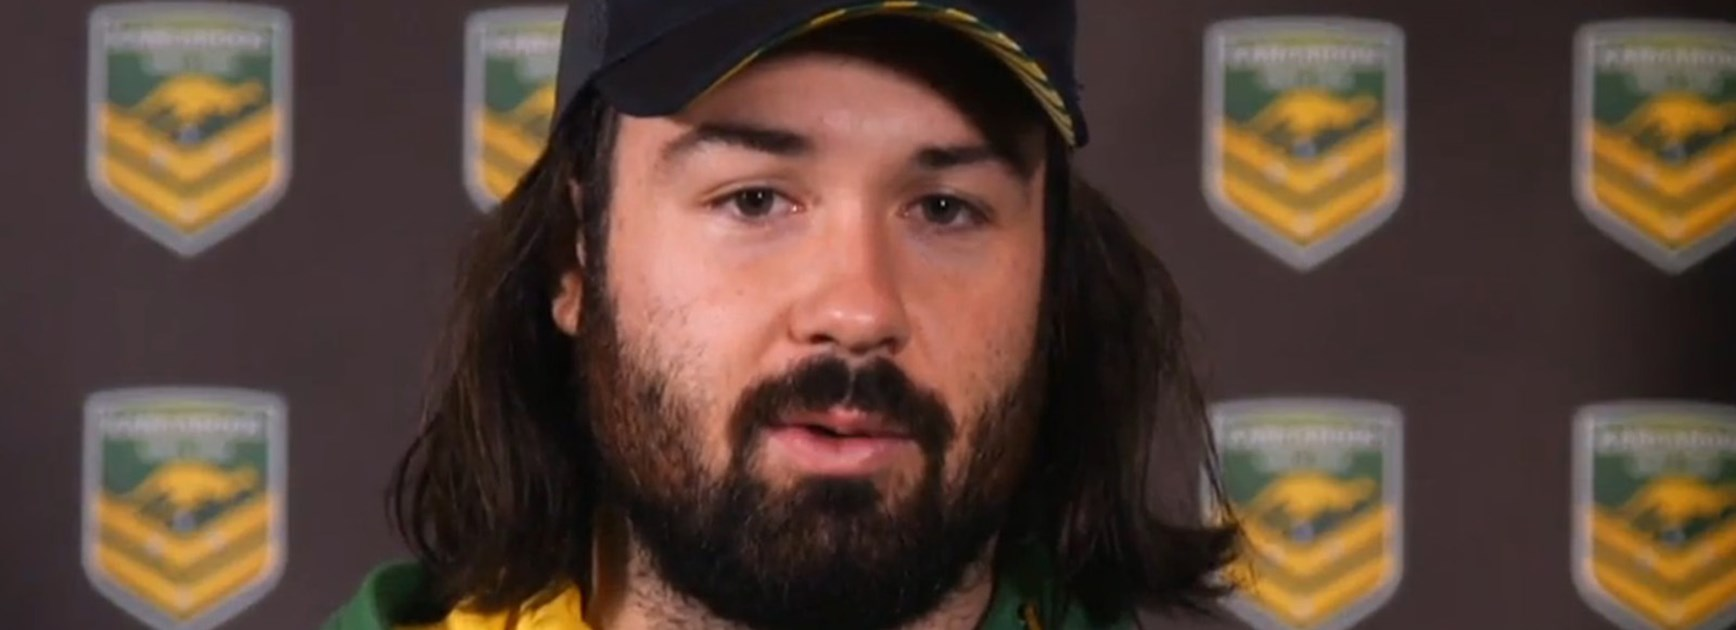 Aaron Woods is looking forward to getting back in the green and gold.